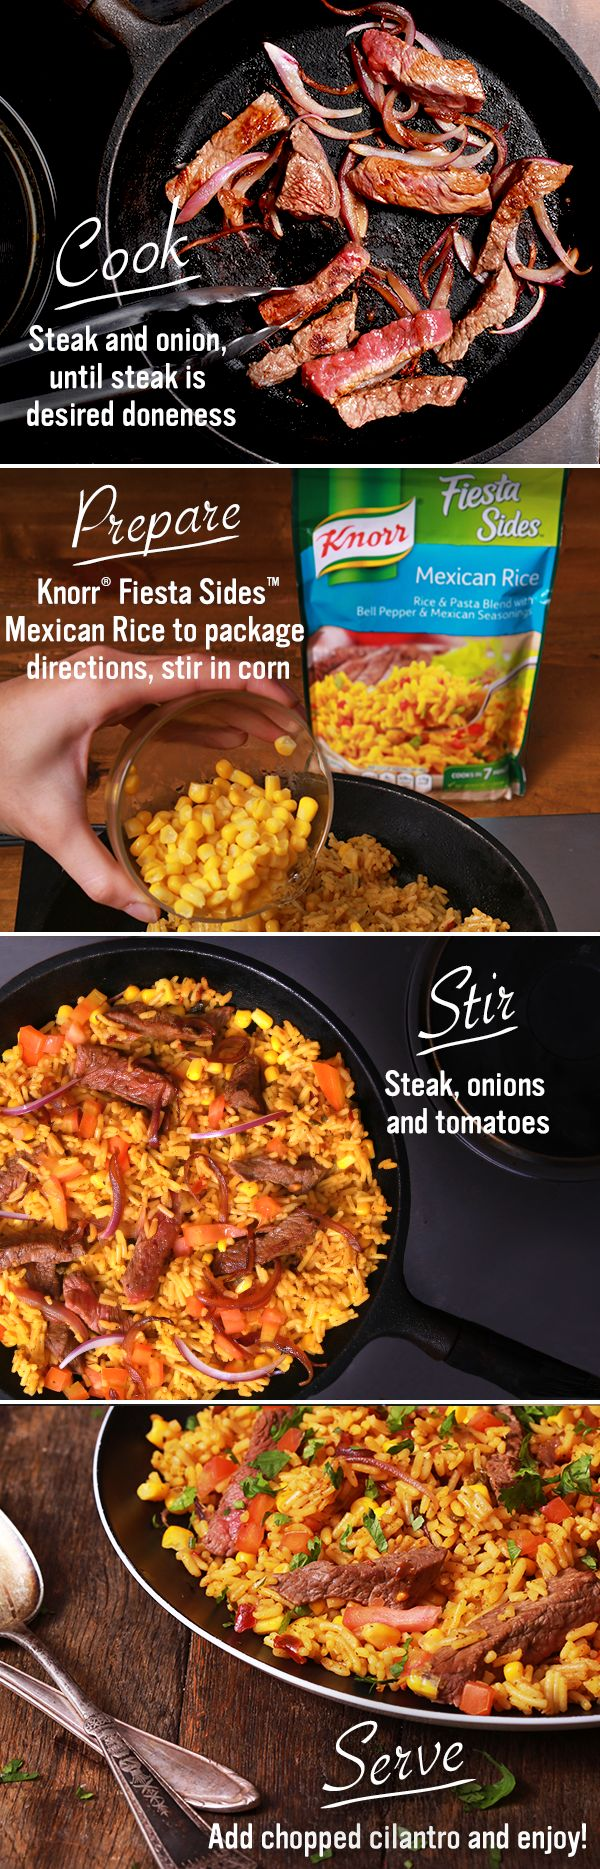 Knorr Mexican Steak Salsa & Rice is bursting with carne asada flavor! With only 6 ingredients, this one-skillet recipe is quick & easy to make. Just melt spread over medium-high heat. Then, cook steak and onion until steak is at its desired doneness. Remove & set aside. Prepare Knorr® Fiesta Sides™ - Mexican Rice in same skillet according to package directions, stirring in corn during the last 5 minutes of cook time. Then, stir in steak, onions and tomato. Garnish with chopped fresh…